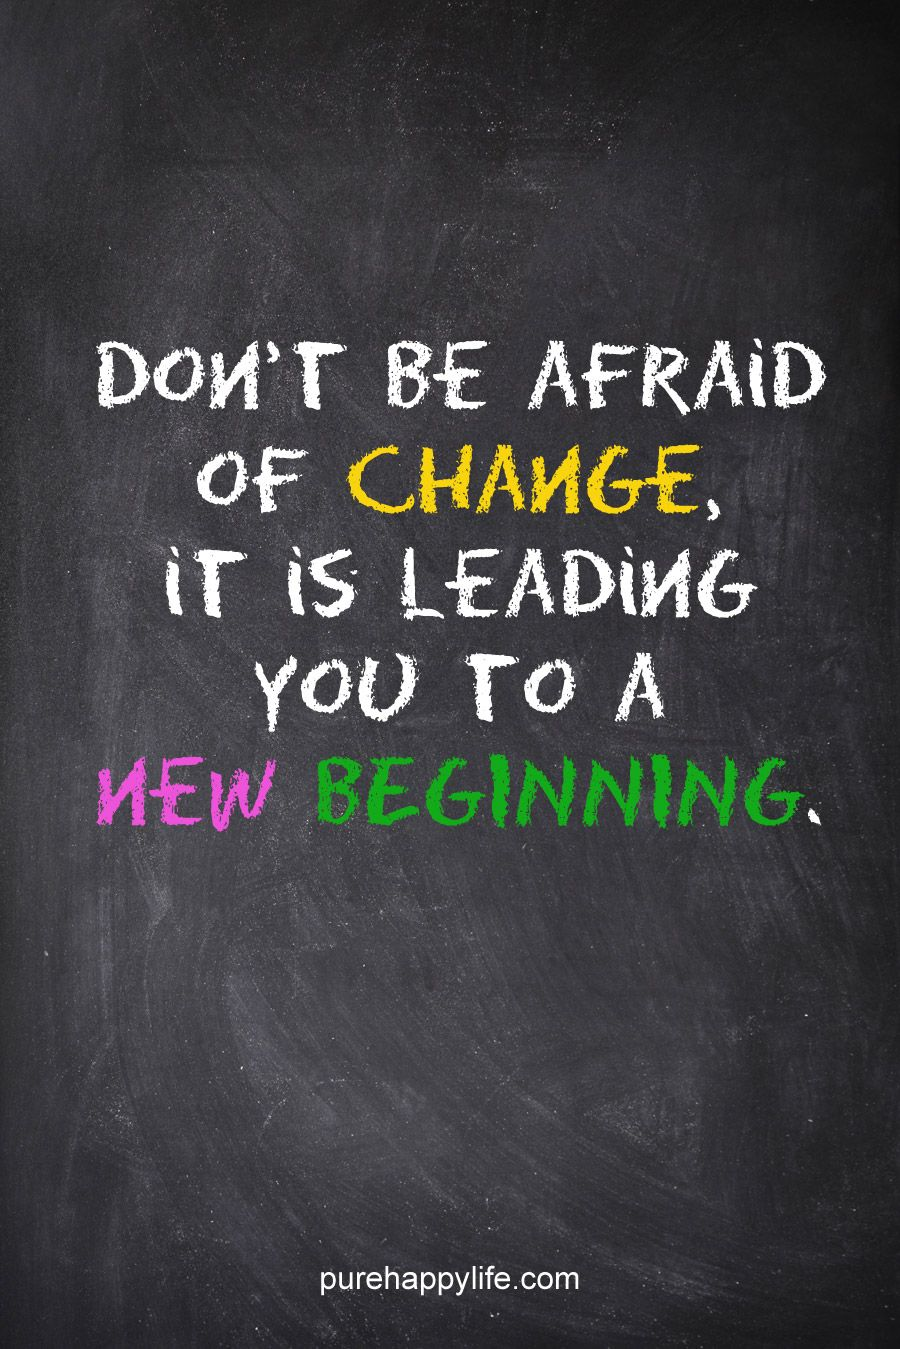 Quotes New Beginnings Quotes More On Purehappylife Don't Be Afraid Of Change It Is